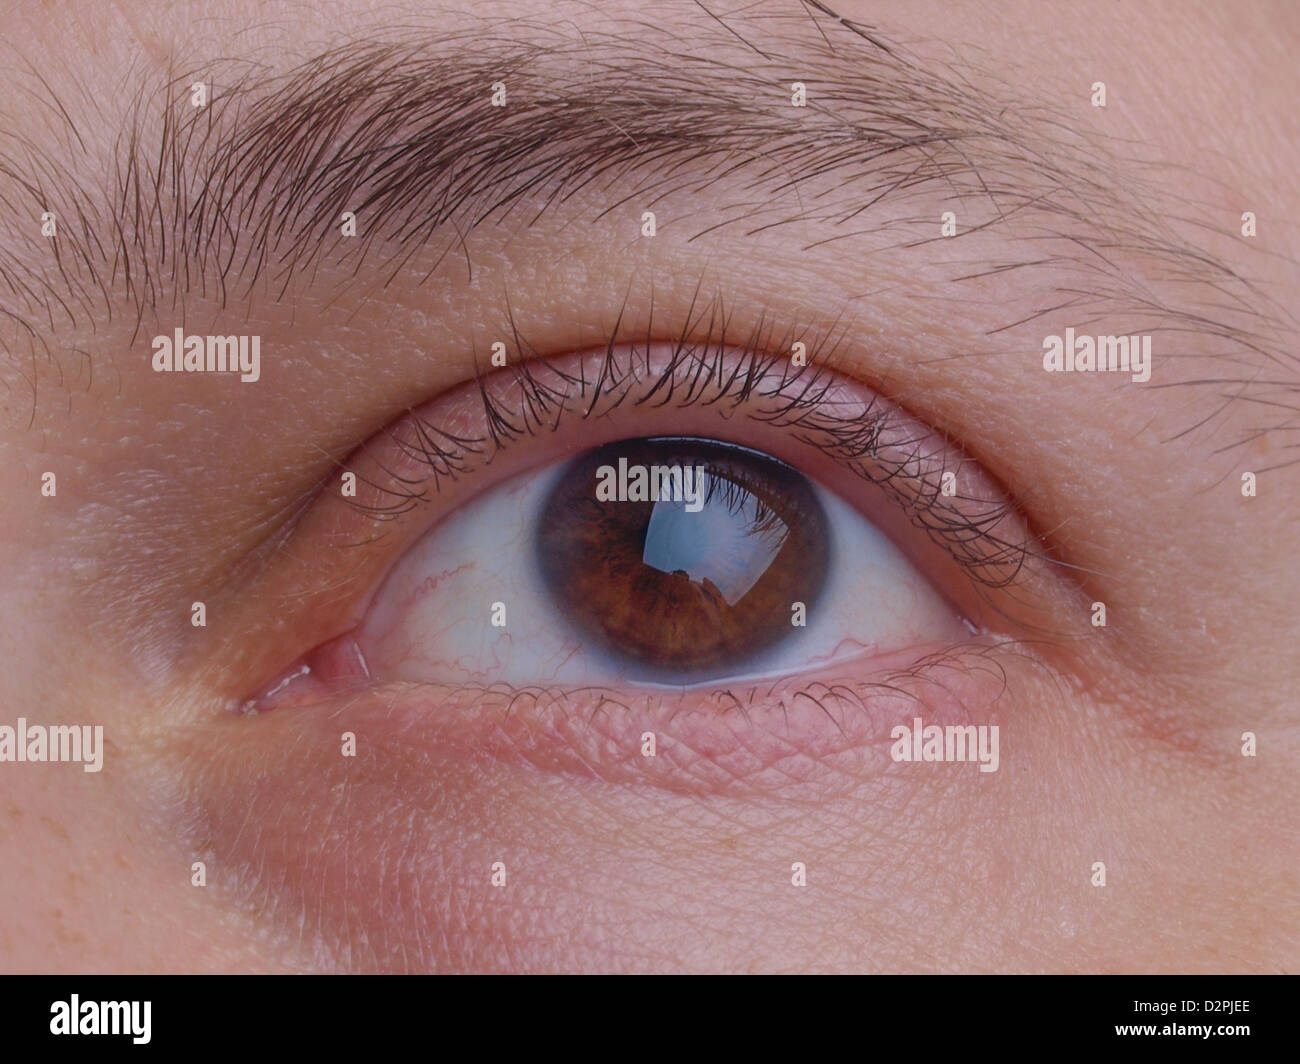 Close detail of an eye pupil and eyelids - Stock Image